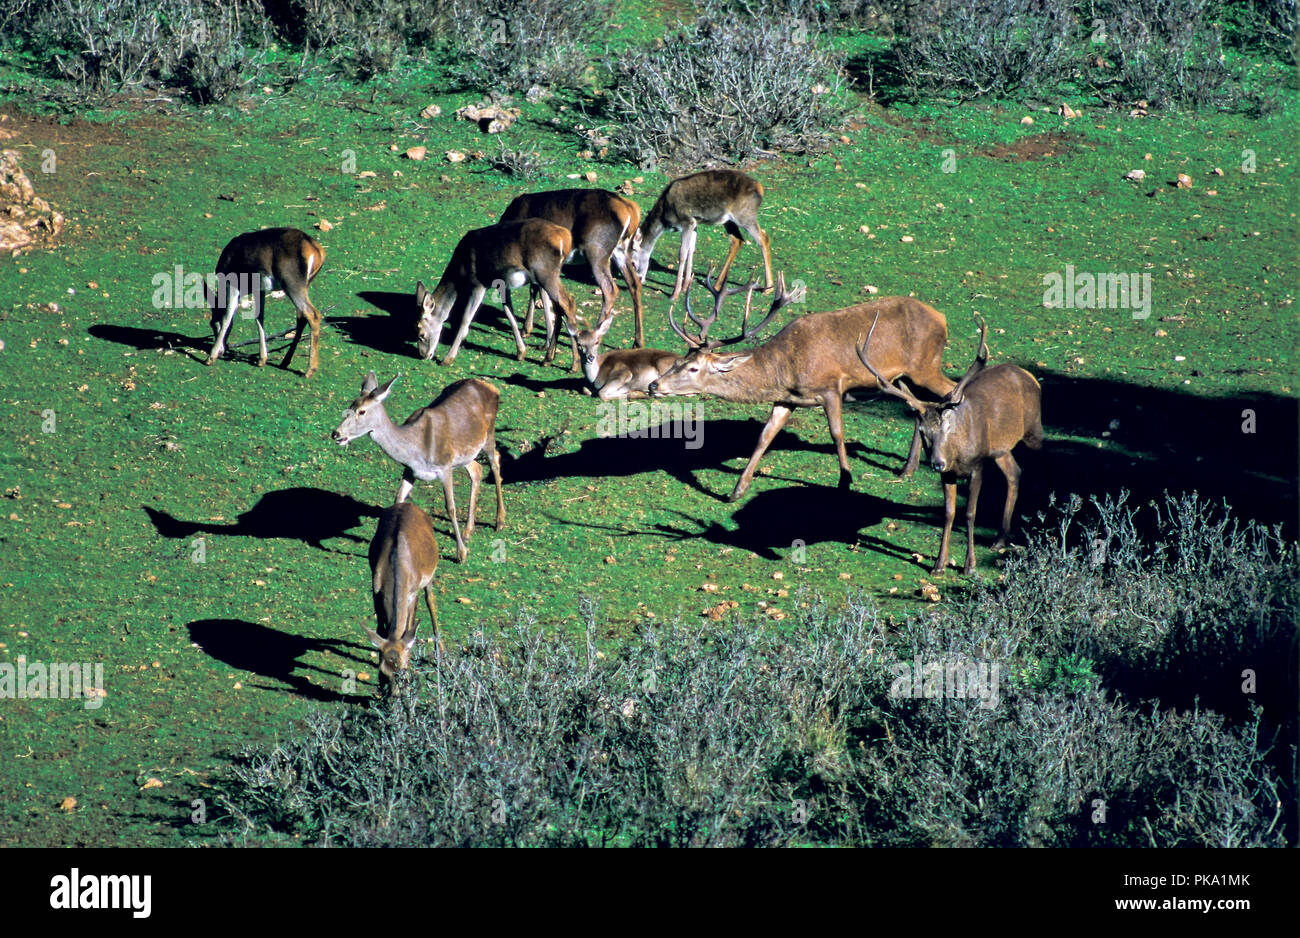 A Red deer group. Sierras de Cazorla, Segura y Las Villas Natural Park. Jaen province. Region of Andalusia. Spain. Europe - Stock Image